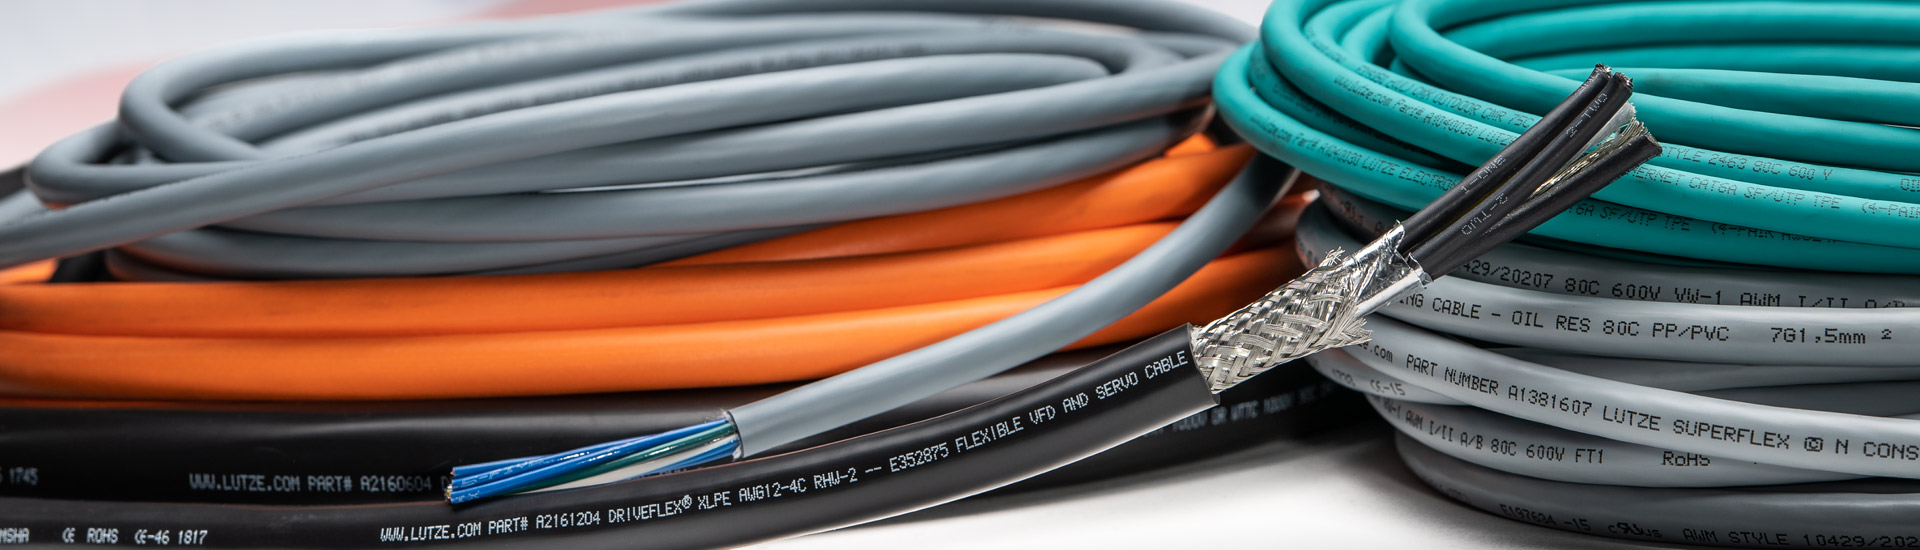 Home Lutze Inc Flat Electrical Wire Quality For Sale Usa Cable Solutions Catalog